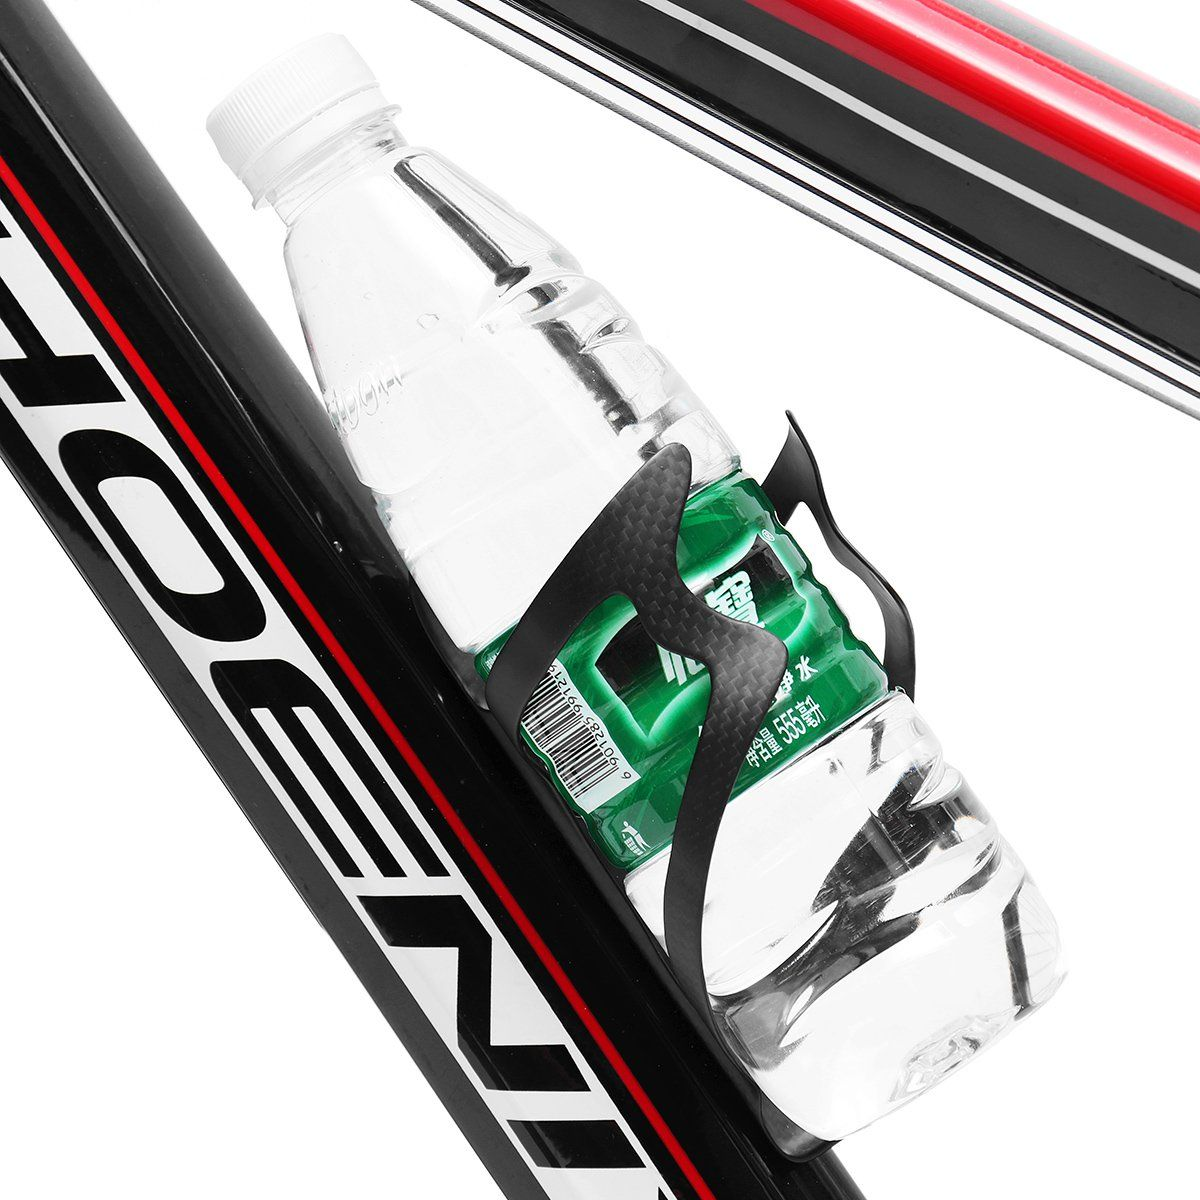 EXCELLENT Special Style 3K Carbon Water Bottle Cage